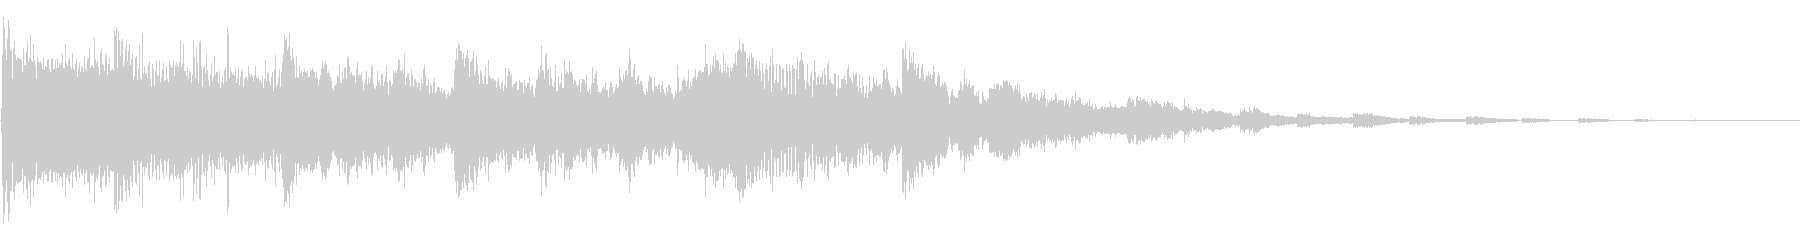 Quiet, serious, commentary, ambi, end's unreproduced waveform